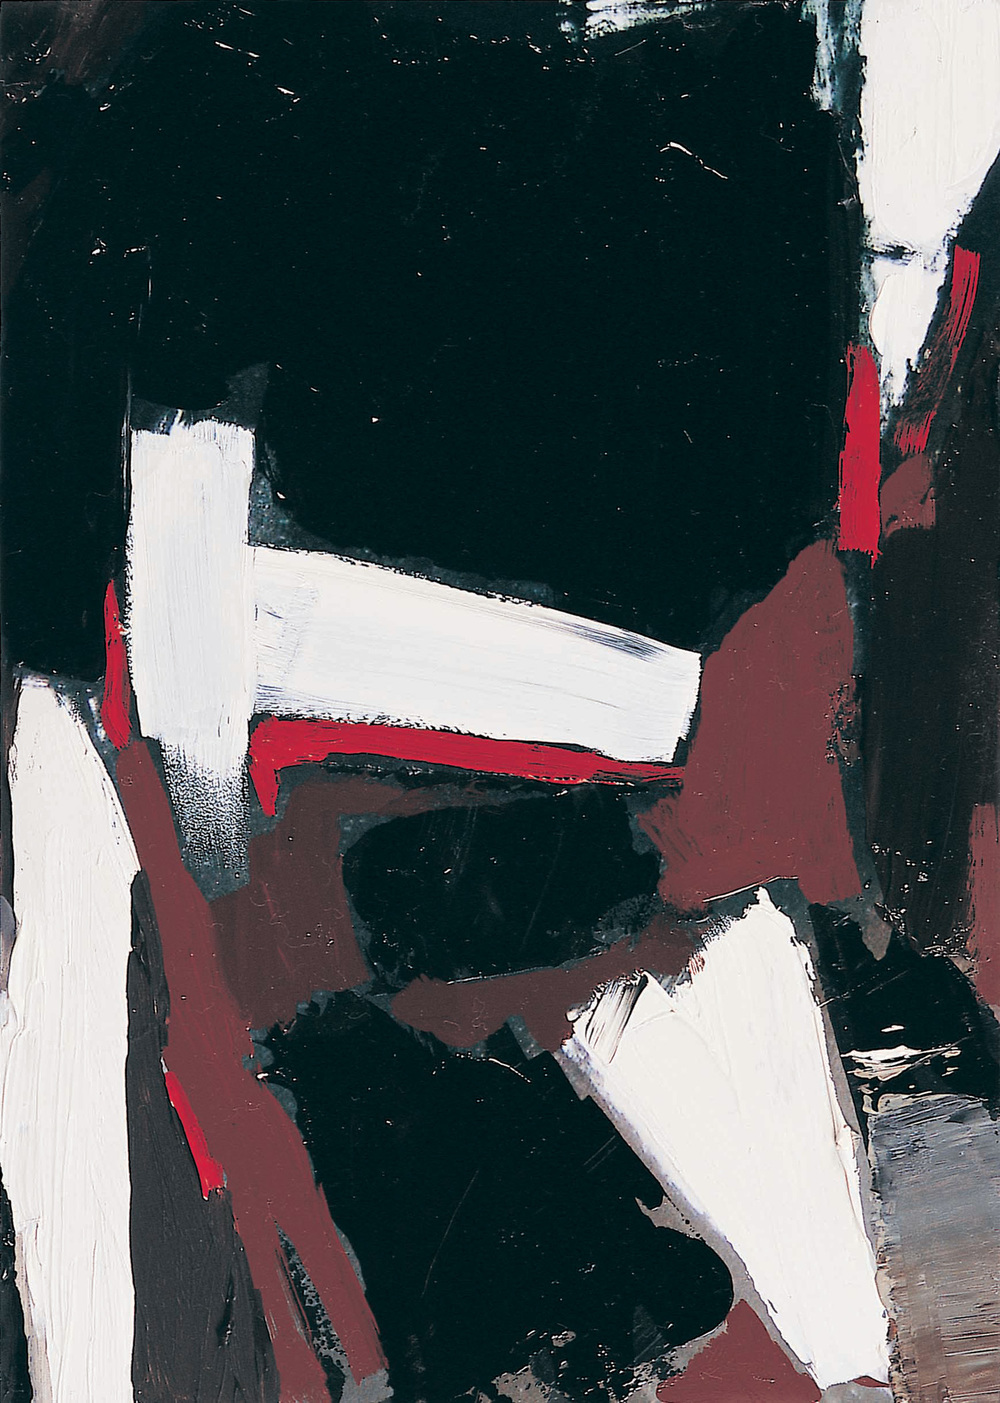 Liam Belton_-_Shaft_oil on paper_17.5 x 12.5cm.jpg